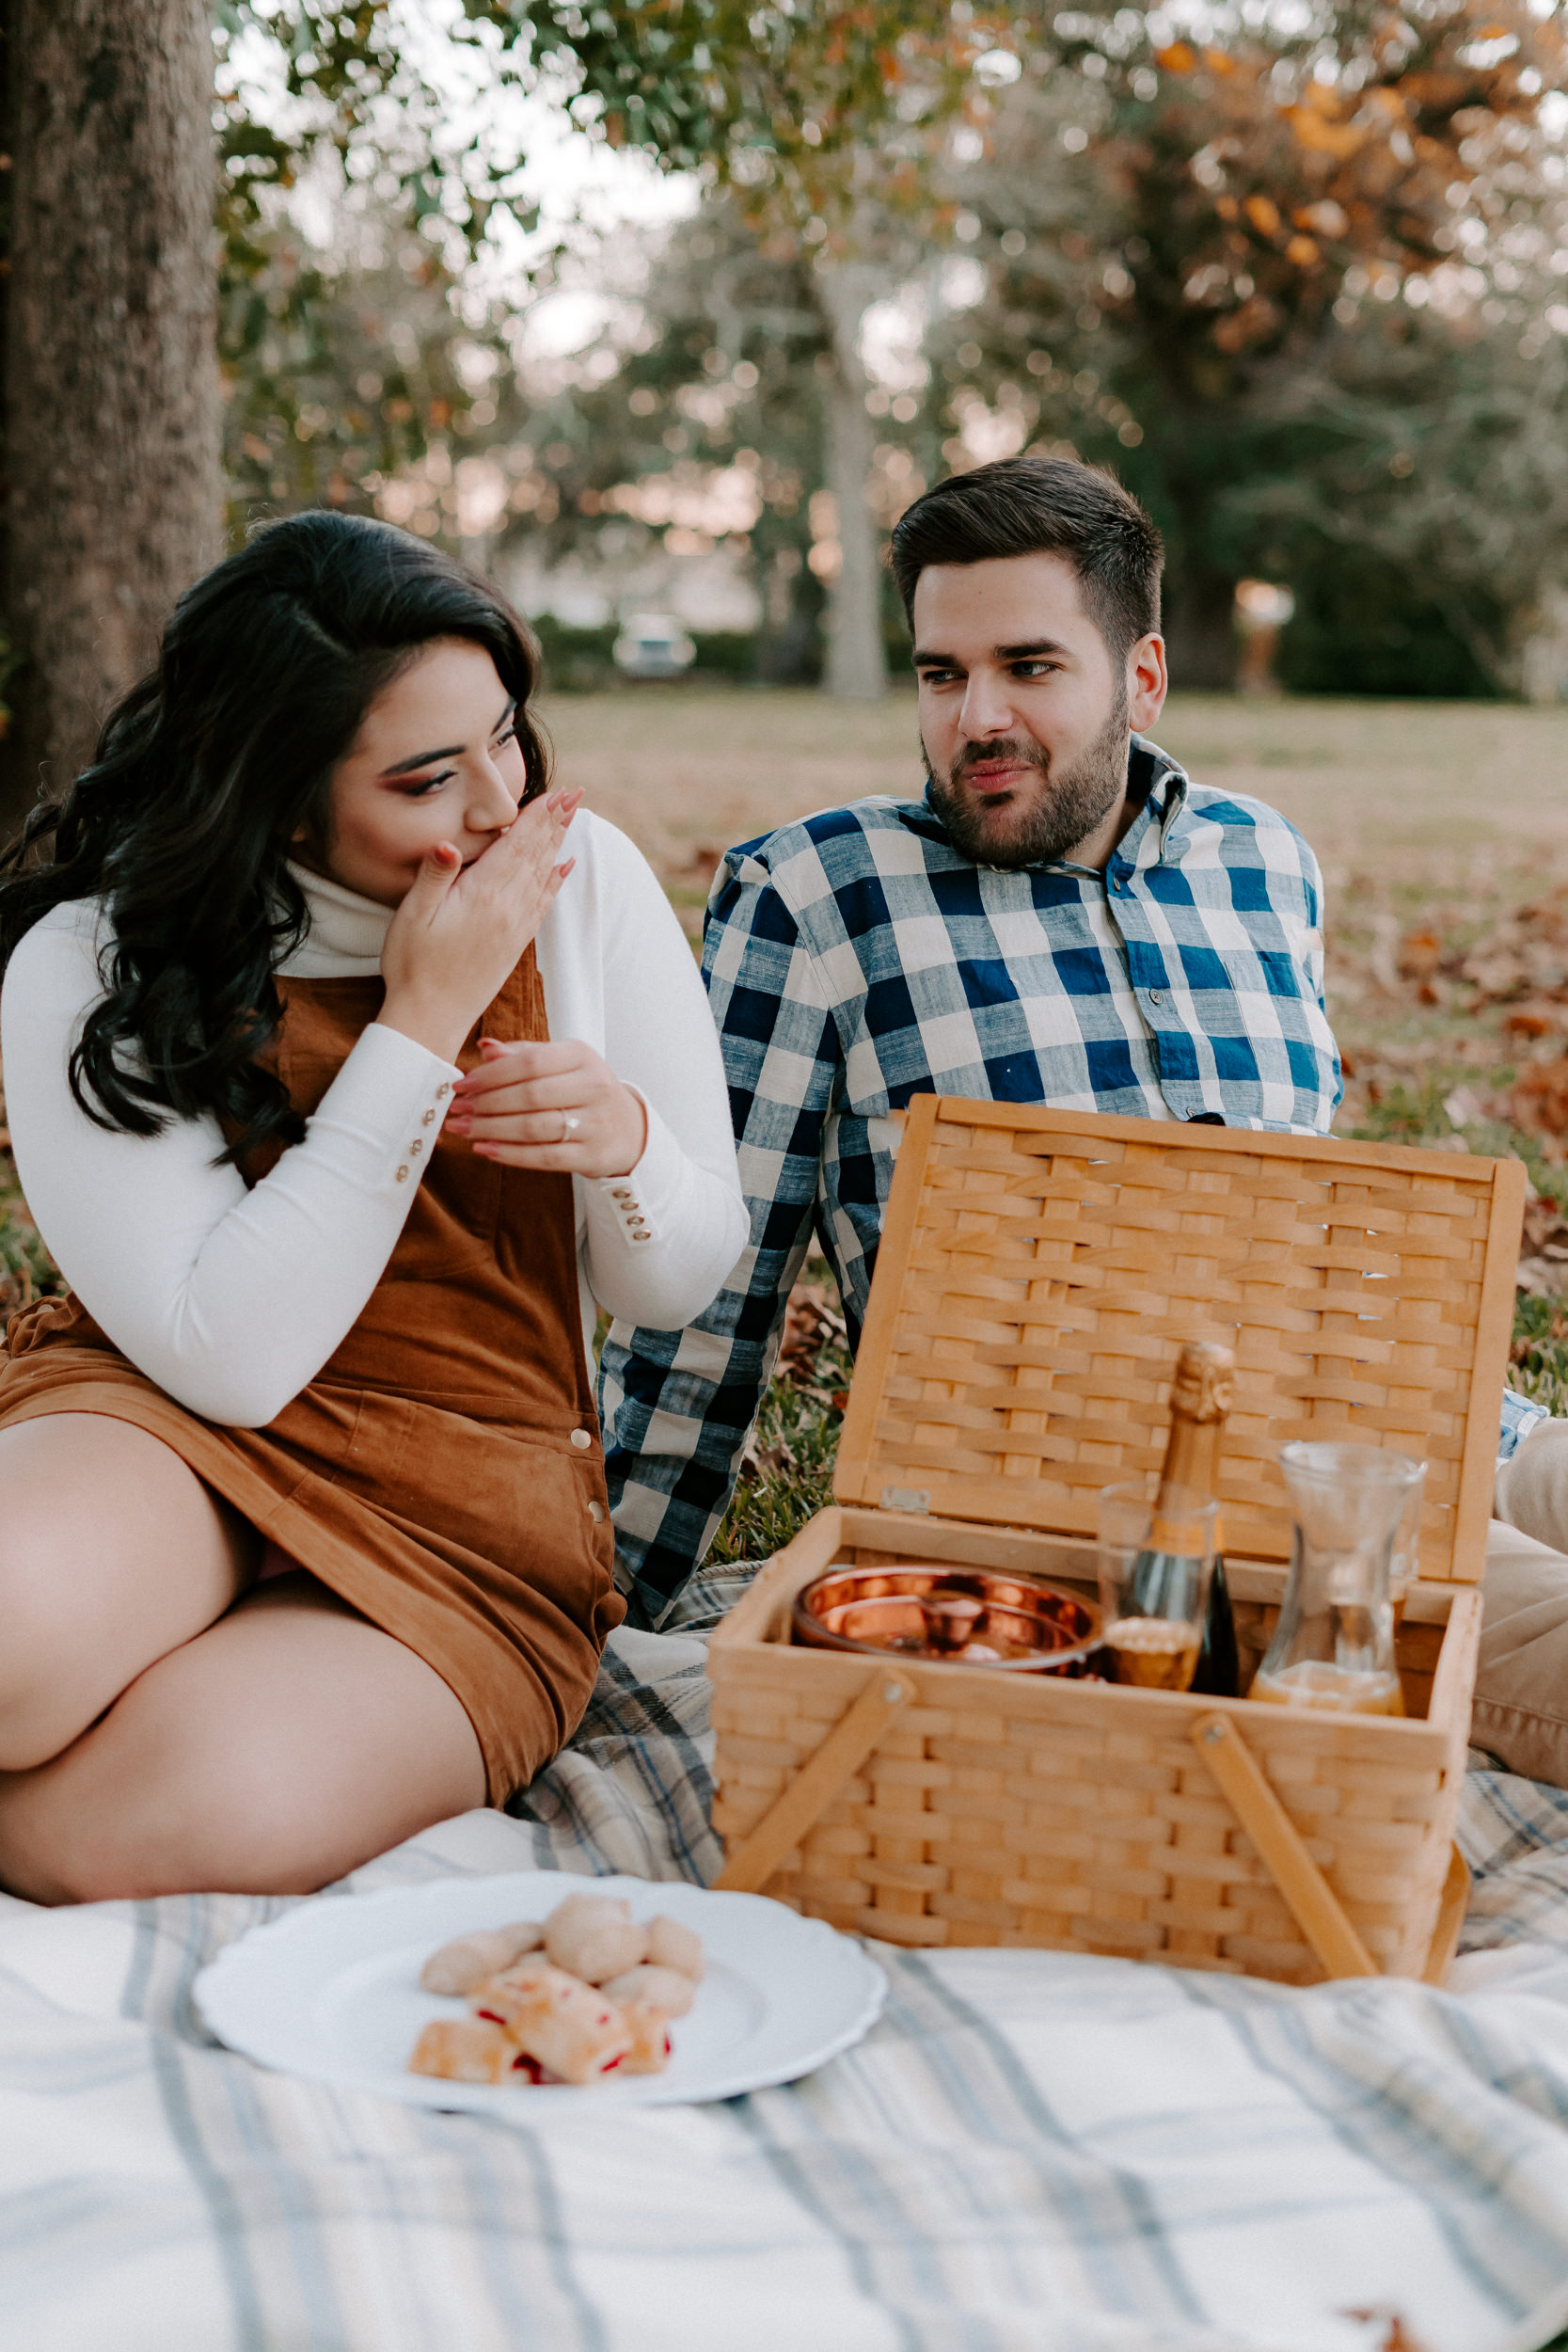 lake-charles-photography-engagements-intimate-session17.jpg